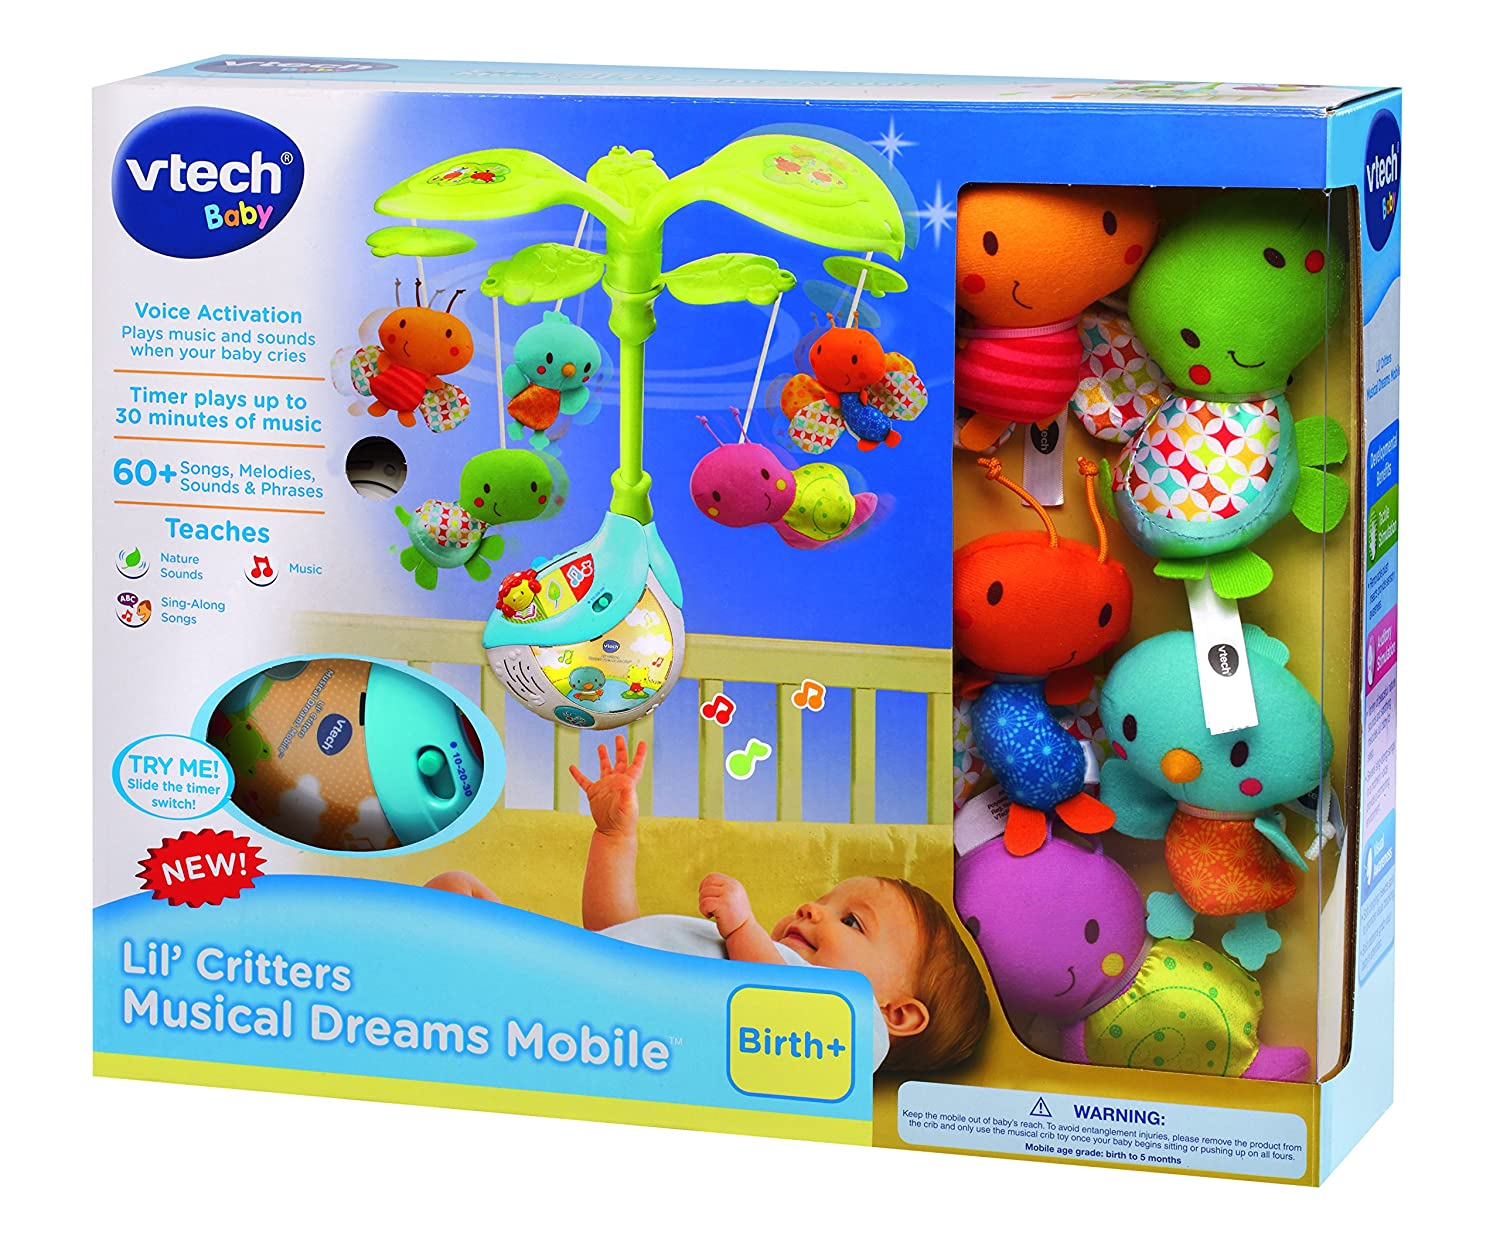 Best crib toys your baby - Amazon Com Vtech Baby Lil Critters Musical Dreams Mobile Toys Games